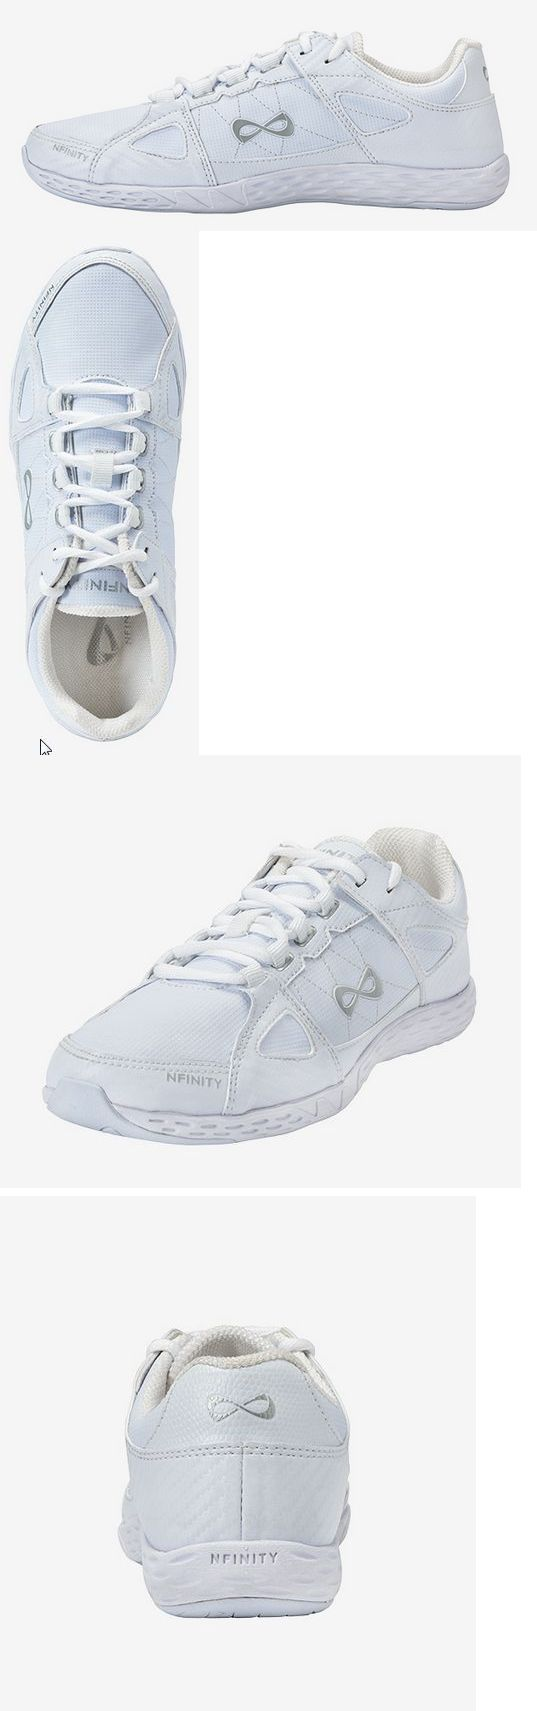 Cheerleading 66832: Nfinity Rival Youth Cheer Shoe -> BUY IT NOW ONLY: $69.99 on eBay!